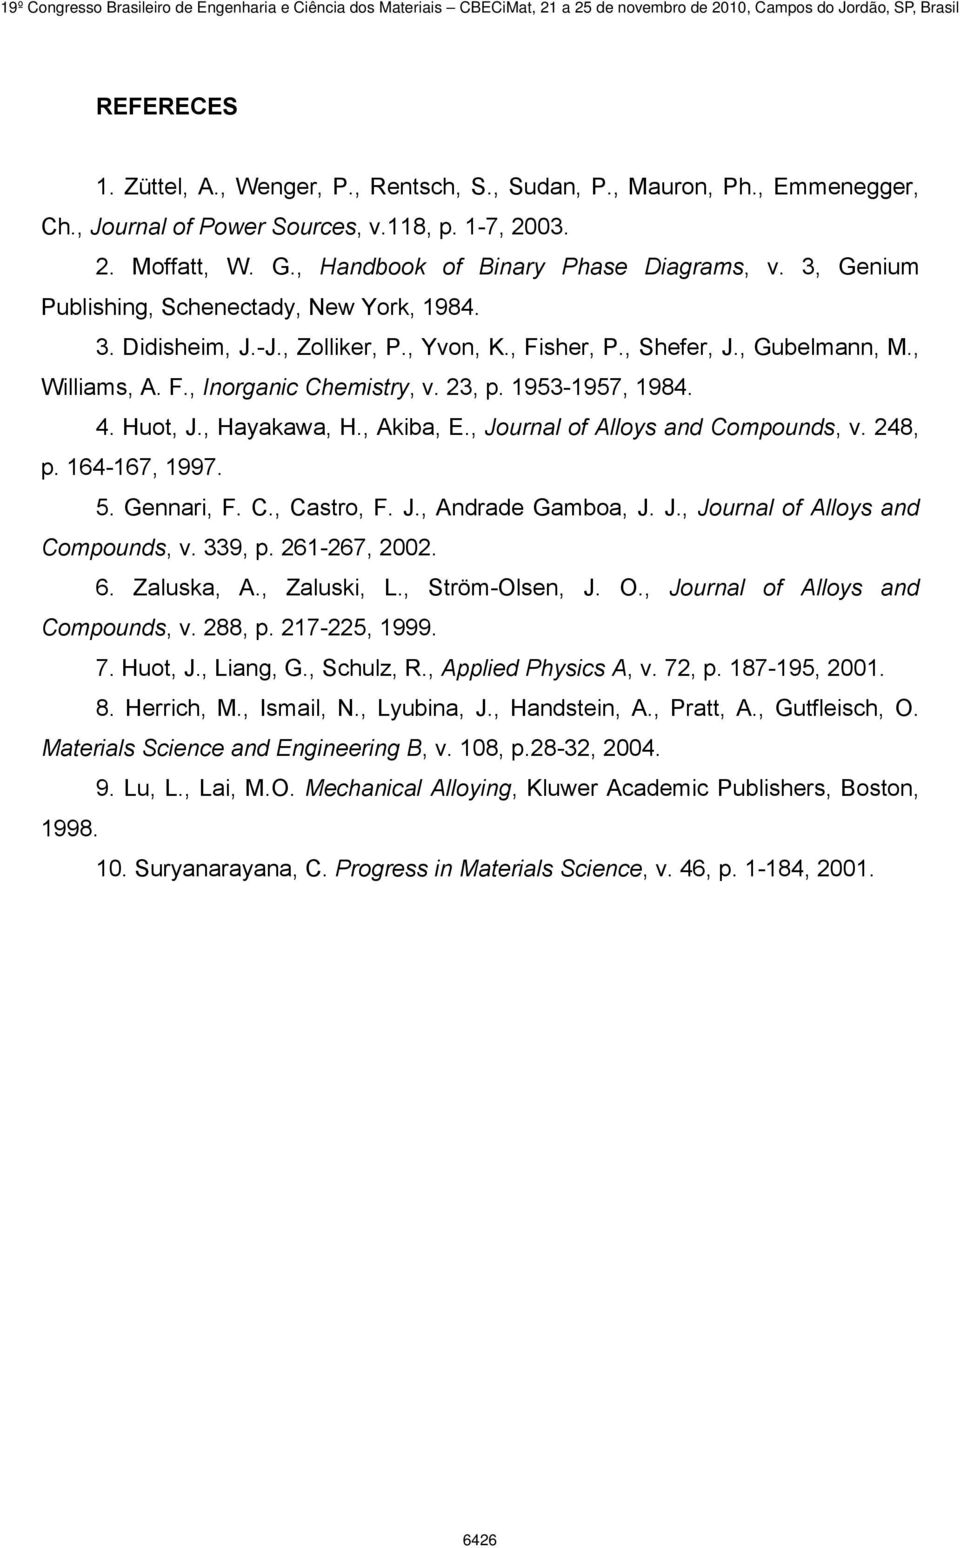 4. Huot, J., Hayakawa, H., Akiba, E., Journal of Alloys and Compounds, v. 248, p. 164-167, 1997. 5. Gennari, F. C., Castro, F. J., Andrade Gamboa, J. J., Journal of Alloys and Compounds, v. 339, p.